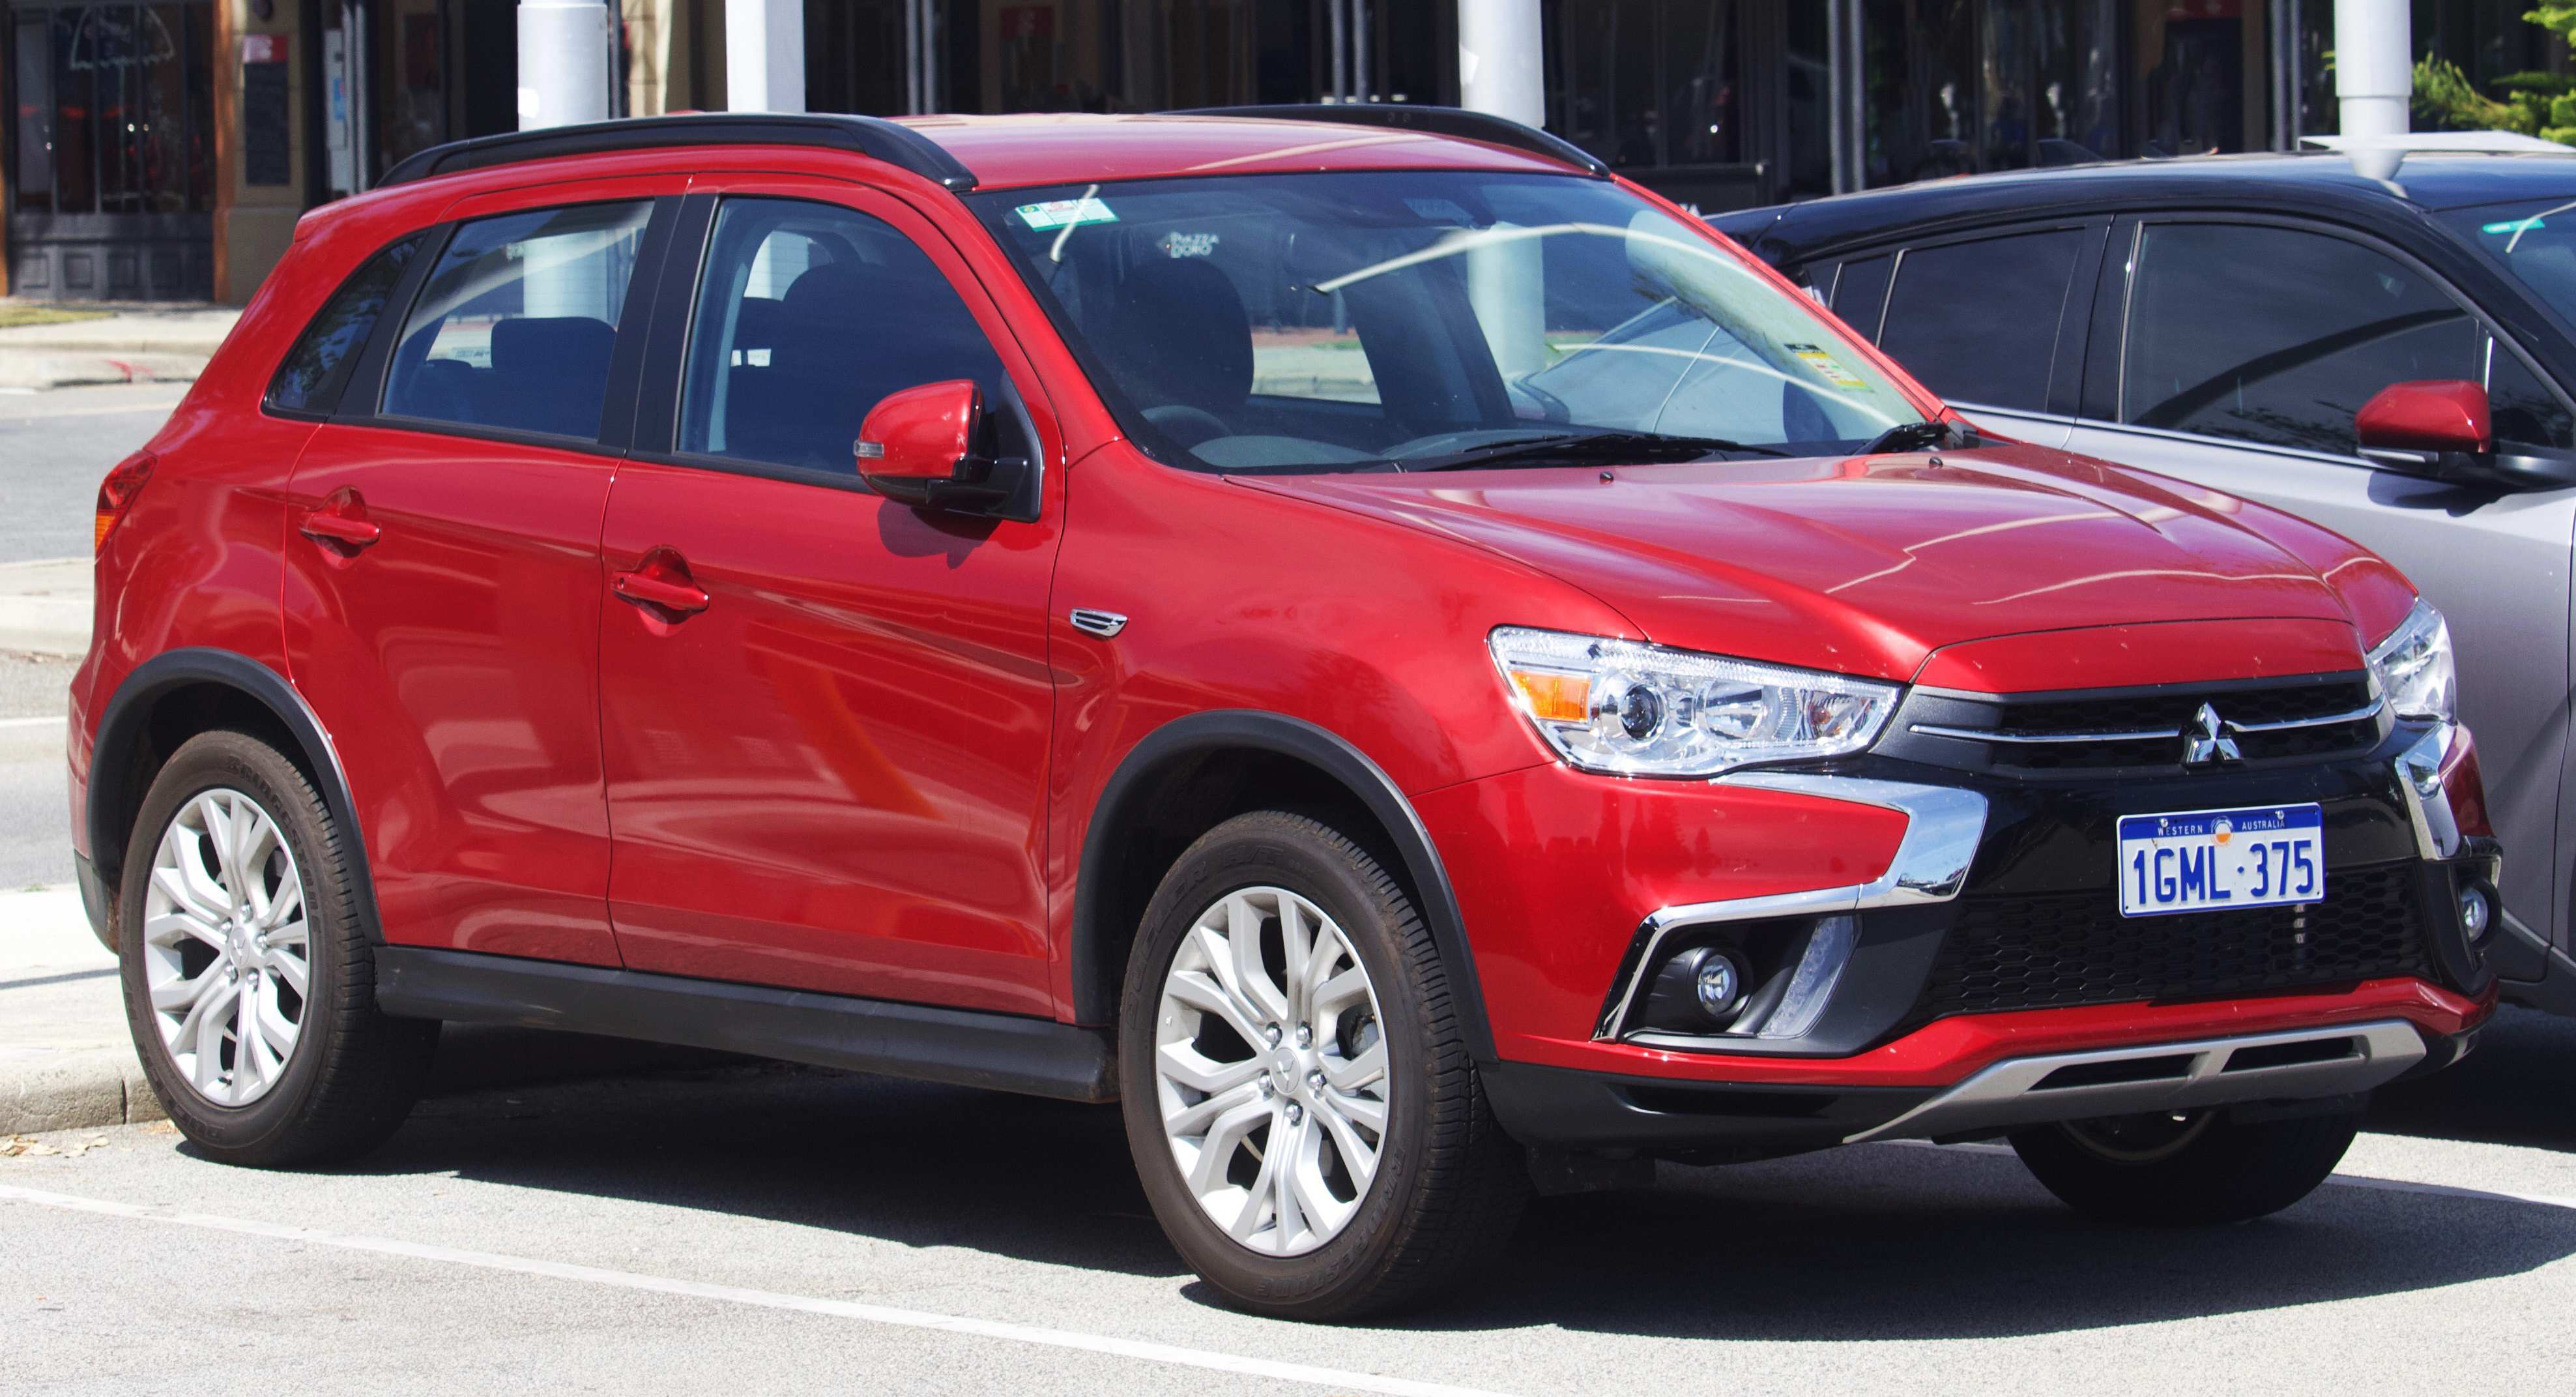 58 Best Review Mitsubishi Asx 2020 Dimensions Research New by Mitsubishi Asx 2020 Dimensions